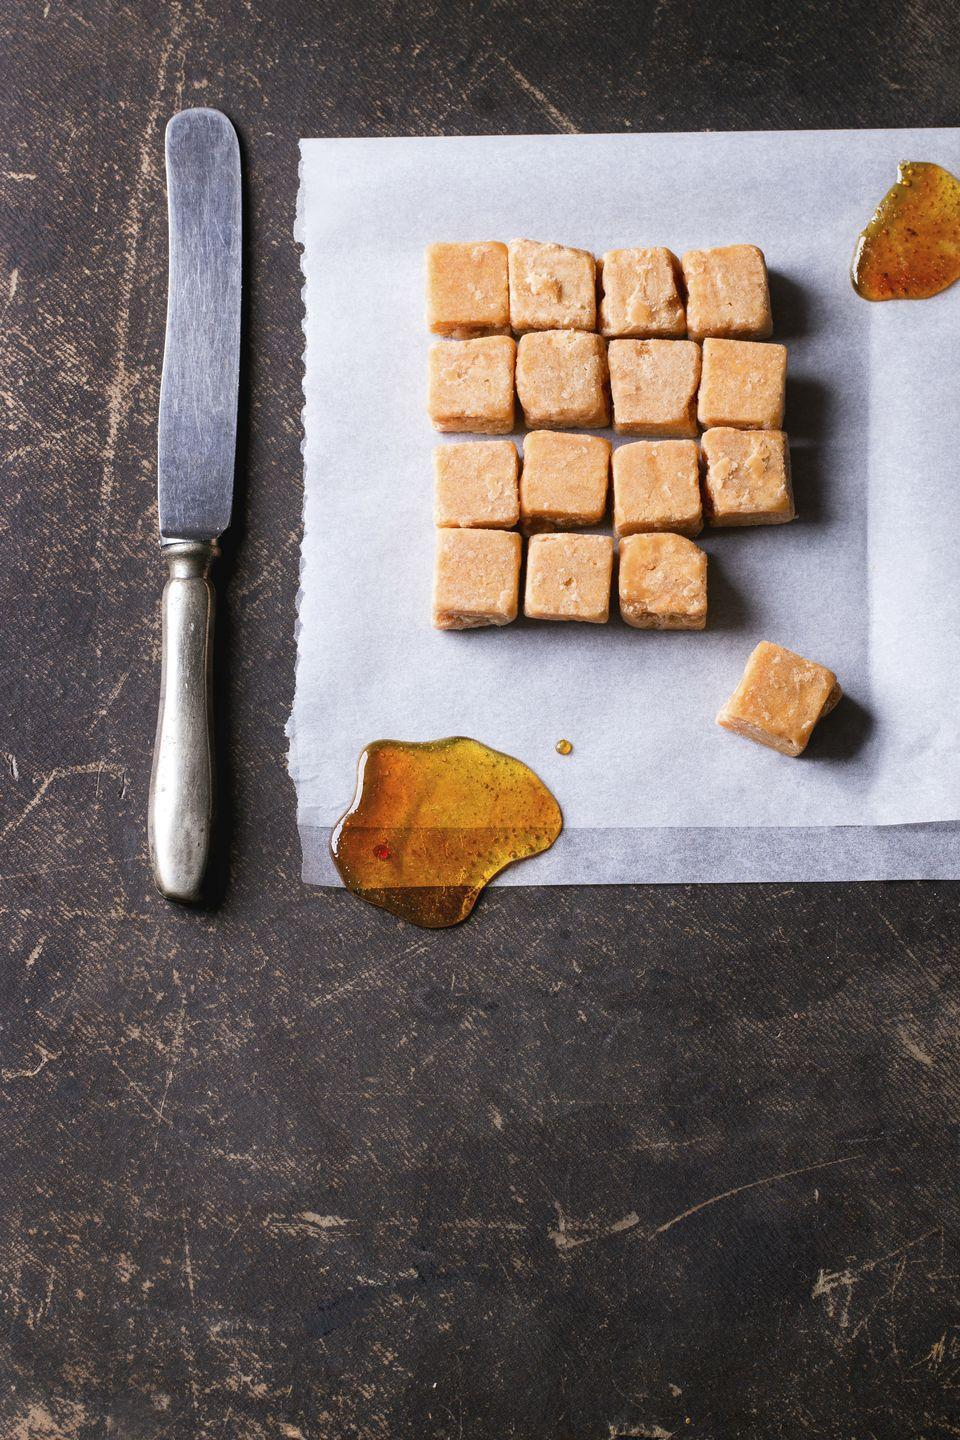 """<p>Another sugarless alternative to dessert, almond butter packs a punch of plant-based proteins (including magnesium and vitamin E) into this wholesome treat. You may also sub ket0-friendly peanut butter or cashew butter in this straightforward recipe.<br></p><p><em><em><em><a href=""""https://www.goodhousekeeping.com/food-recipes/dessert/a29774817/almond-butter-fudge-recipe/"""" rel=""""nofollow noopener"""" target=""""_blank"""" data-ylk=""""slk:Get the recipe for Keto Almond Butter Fudge Recipe »"""" class=""""link rapid-noclick-resp"""">Get the recipe for Keto Almond Butter Fudge Recipe <em><em>»</em></em></a></em></em></em></p>"""